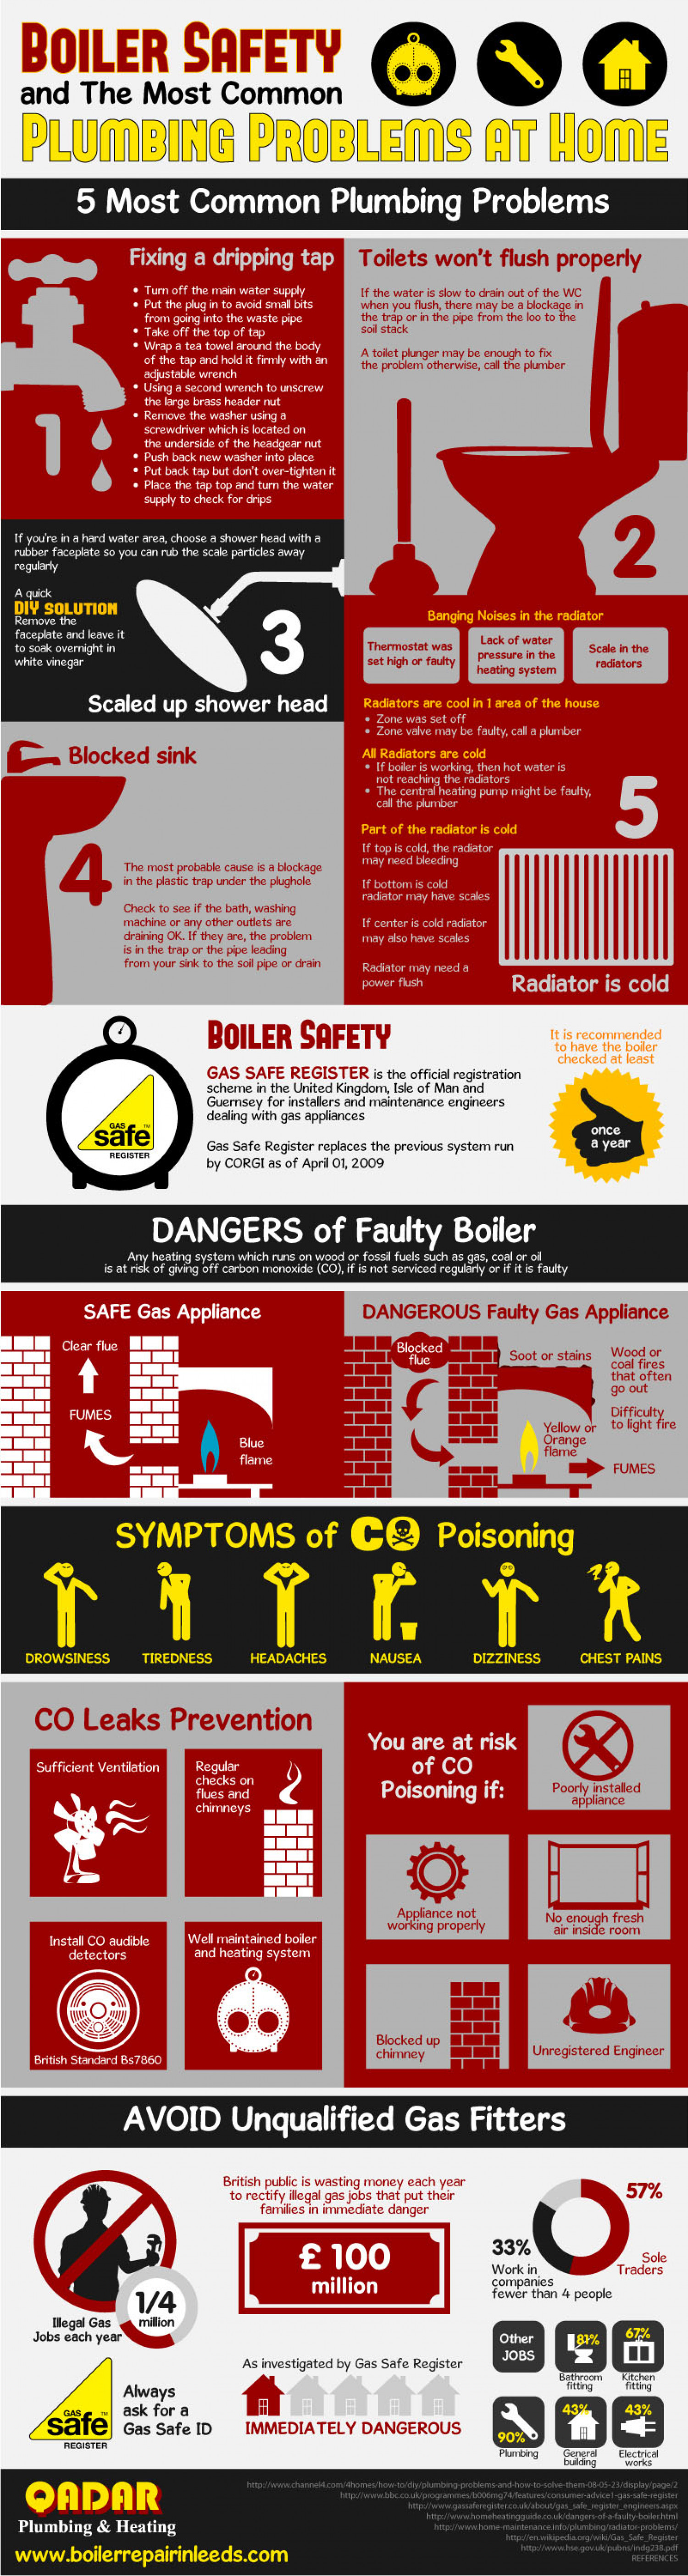 Boiler Safety and The Most Common Plumbing Problems at Home Infographic